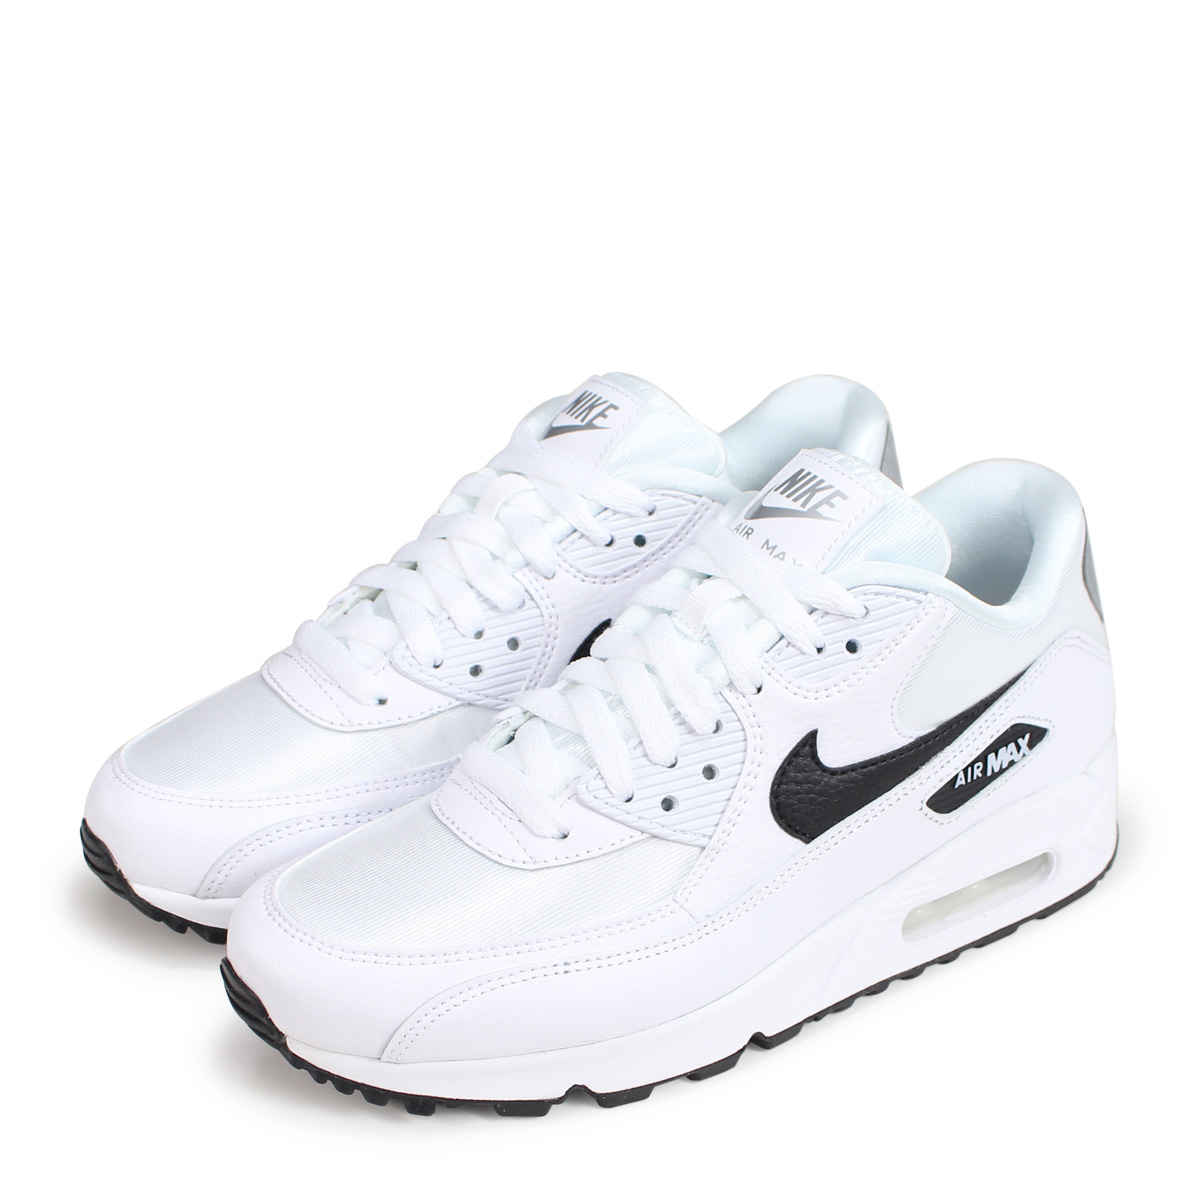 Nike NIKE Air Max 90 lady's men's sneakers WMNS AIR MAX 90 325,213 137 white white